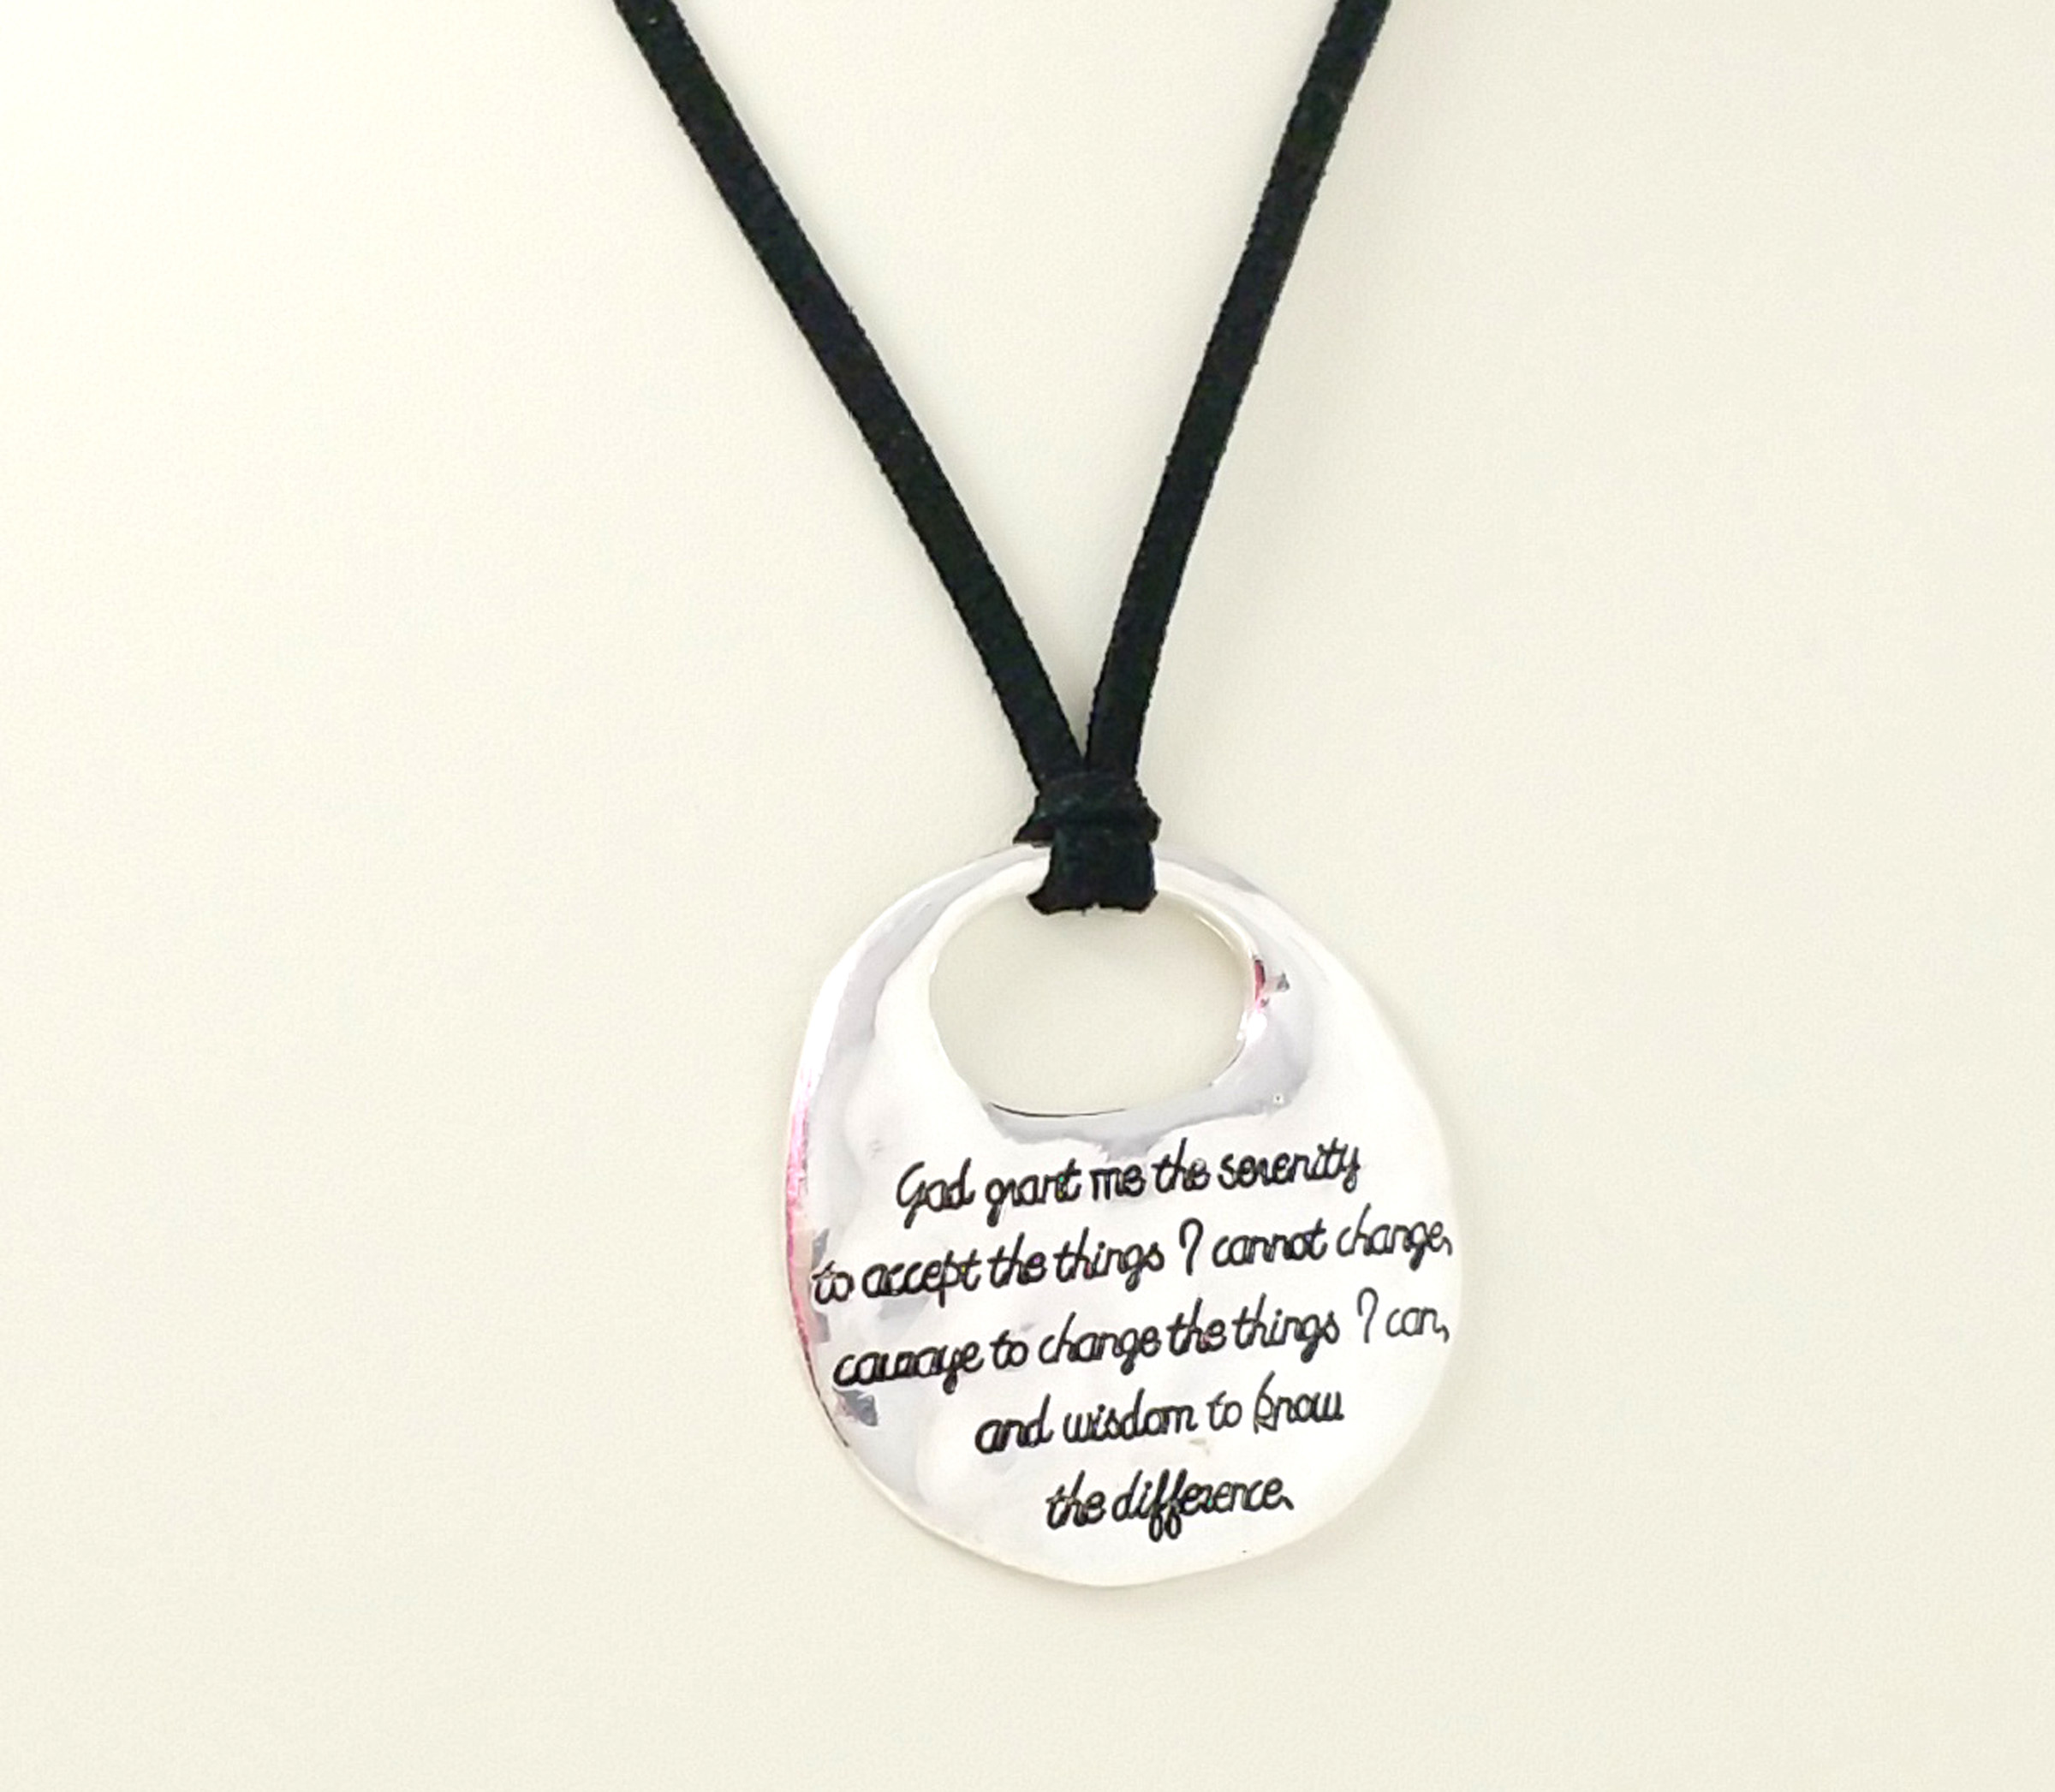 close encouragement necklace serenity prayer mermaid products faith spoon pendant manic